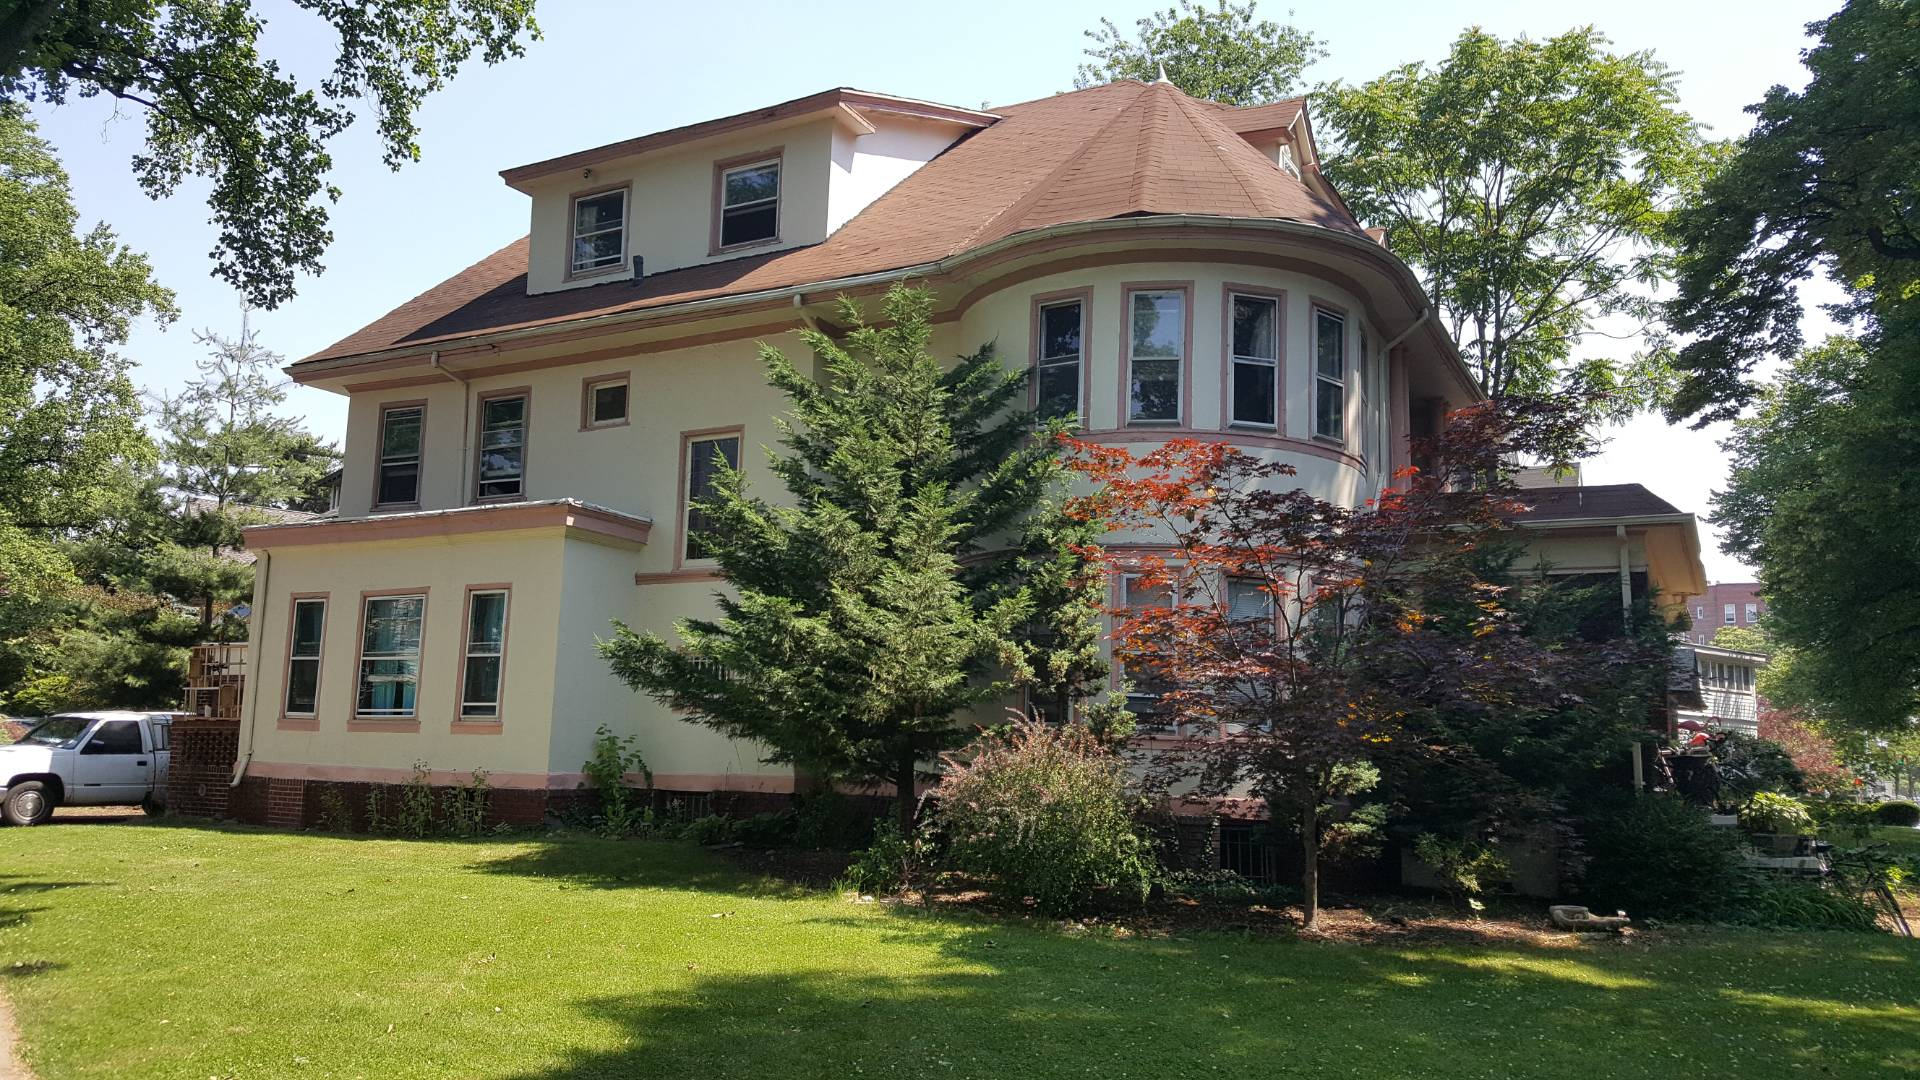 1907 Ditmas Ave, Brooklyn-Canarsie, New York 8 Bedroom as one of Homes & Land Real Estate